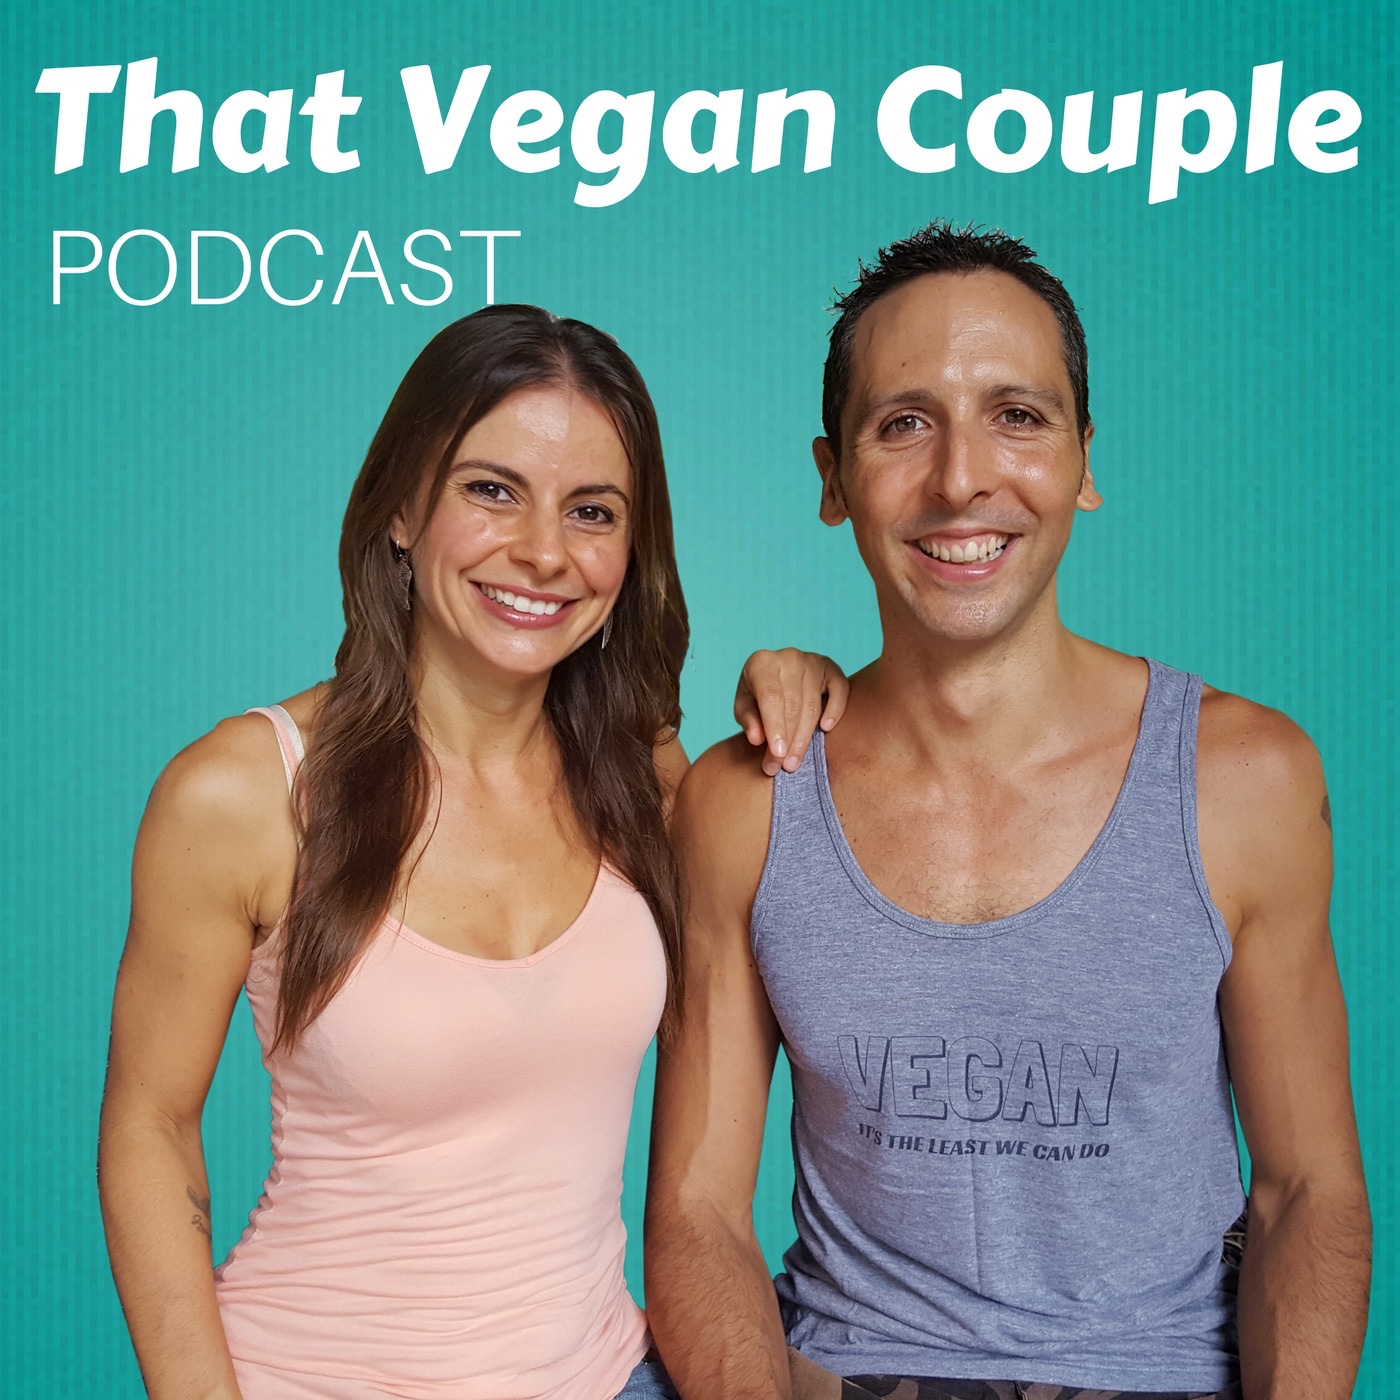 That Vegan Couple Podcast